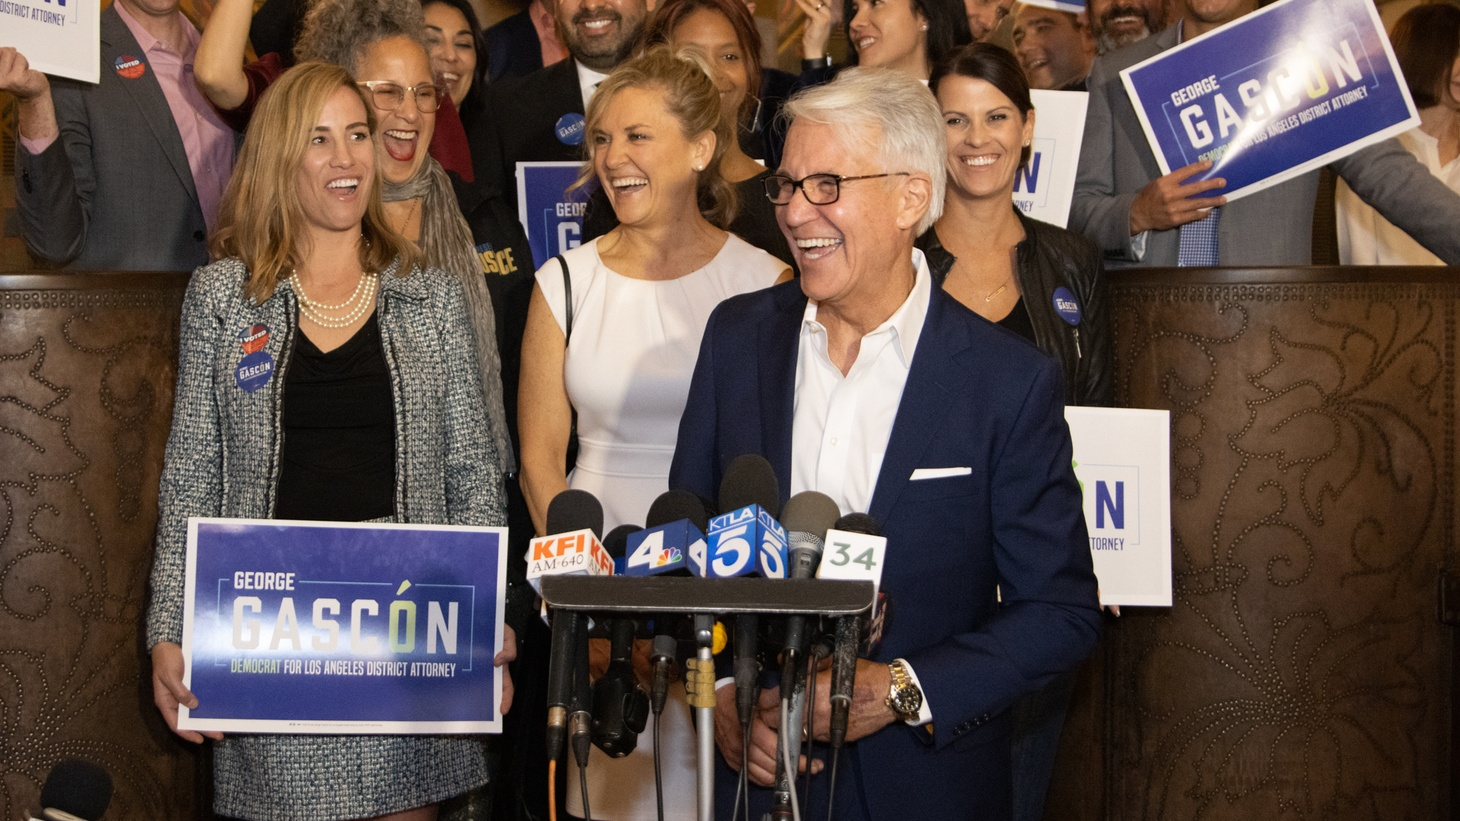 """George Gascón at an election night party on March 3, 2020. He tells KCRW today, """"There are some people that will continue to oppose reform as they have for many years. They have questions, but they're looking for answers too, and they will work with us. This is going to be an evolution. It's not going to happen overnight."""""""